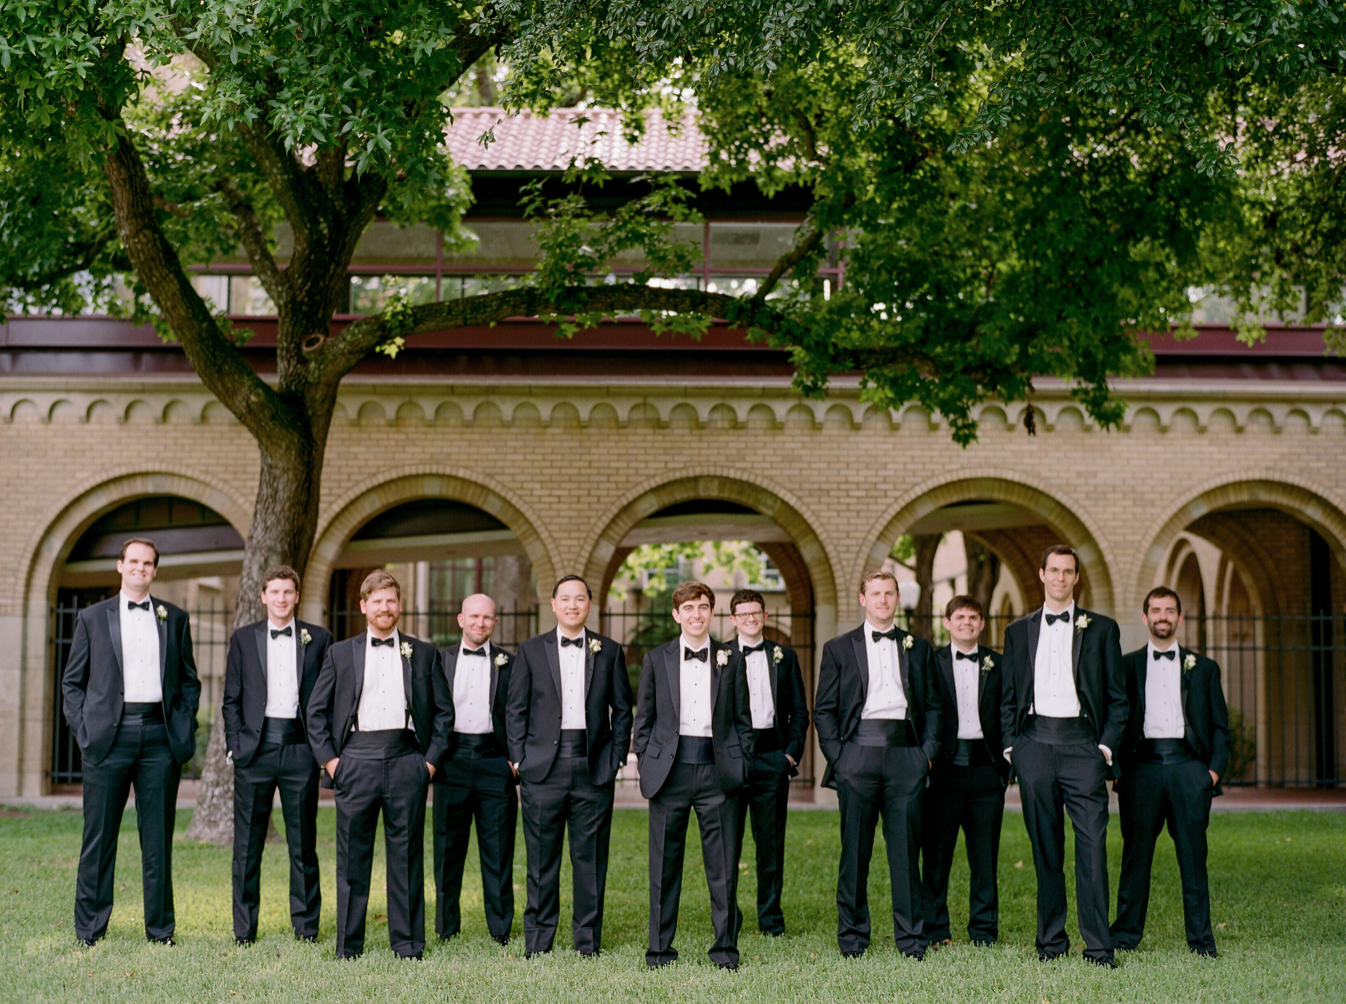 wedding-groom-groomsmen-photography-dana-fernadez-river-oaks-country-club-boutonniere-floral-greenery-by-maxit-flower-design-houston-texas